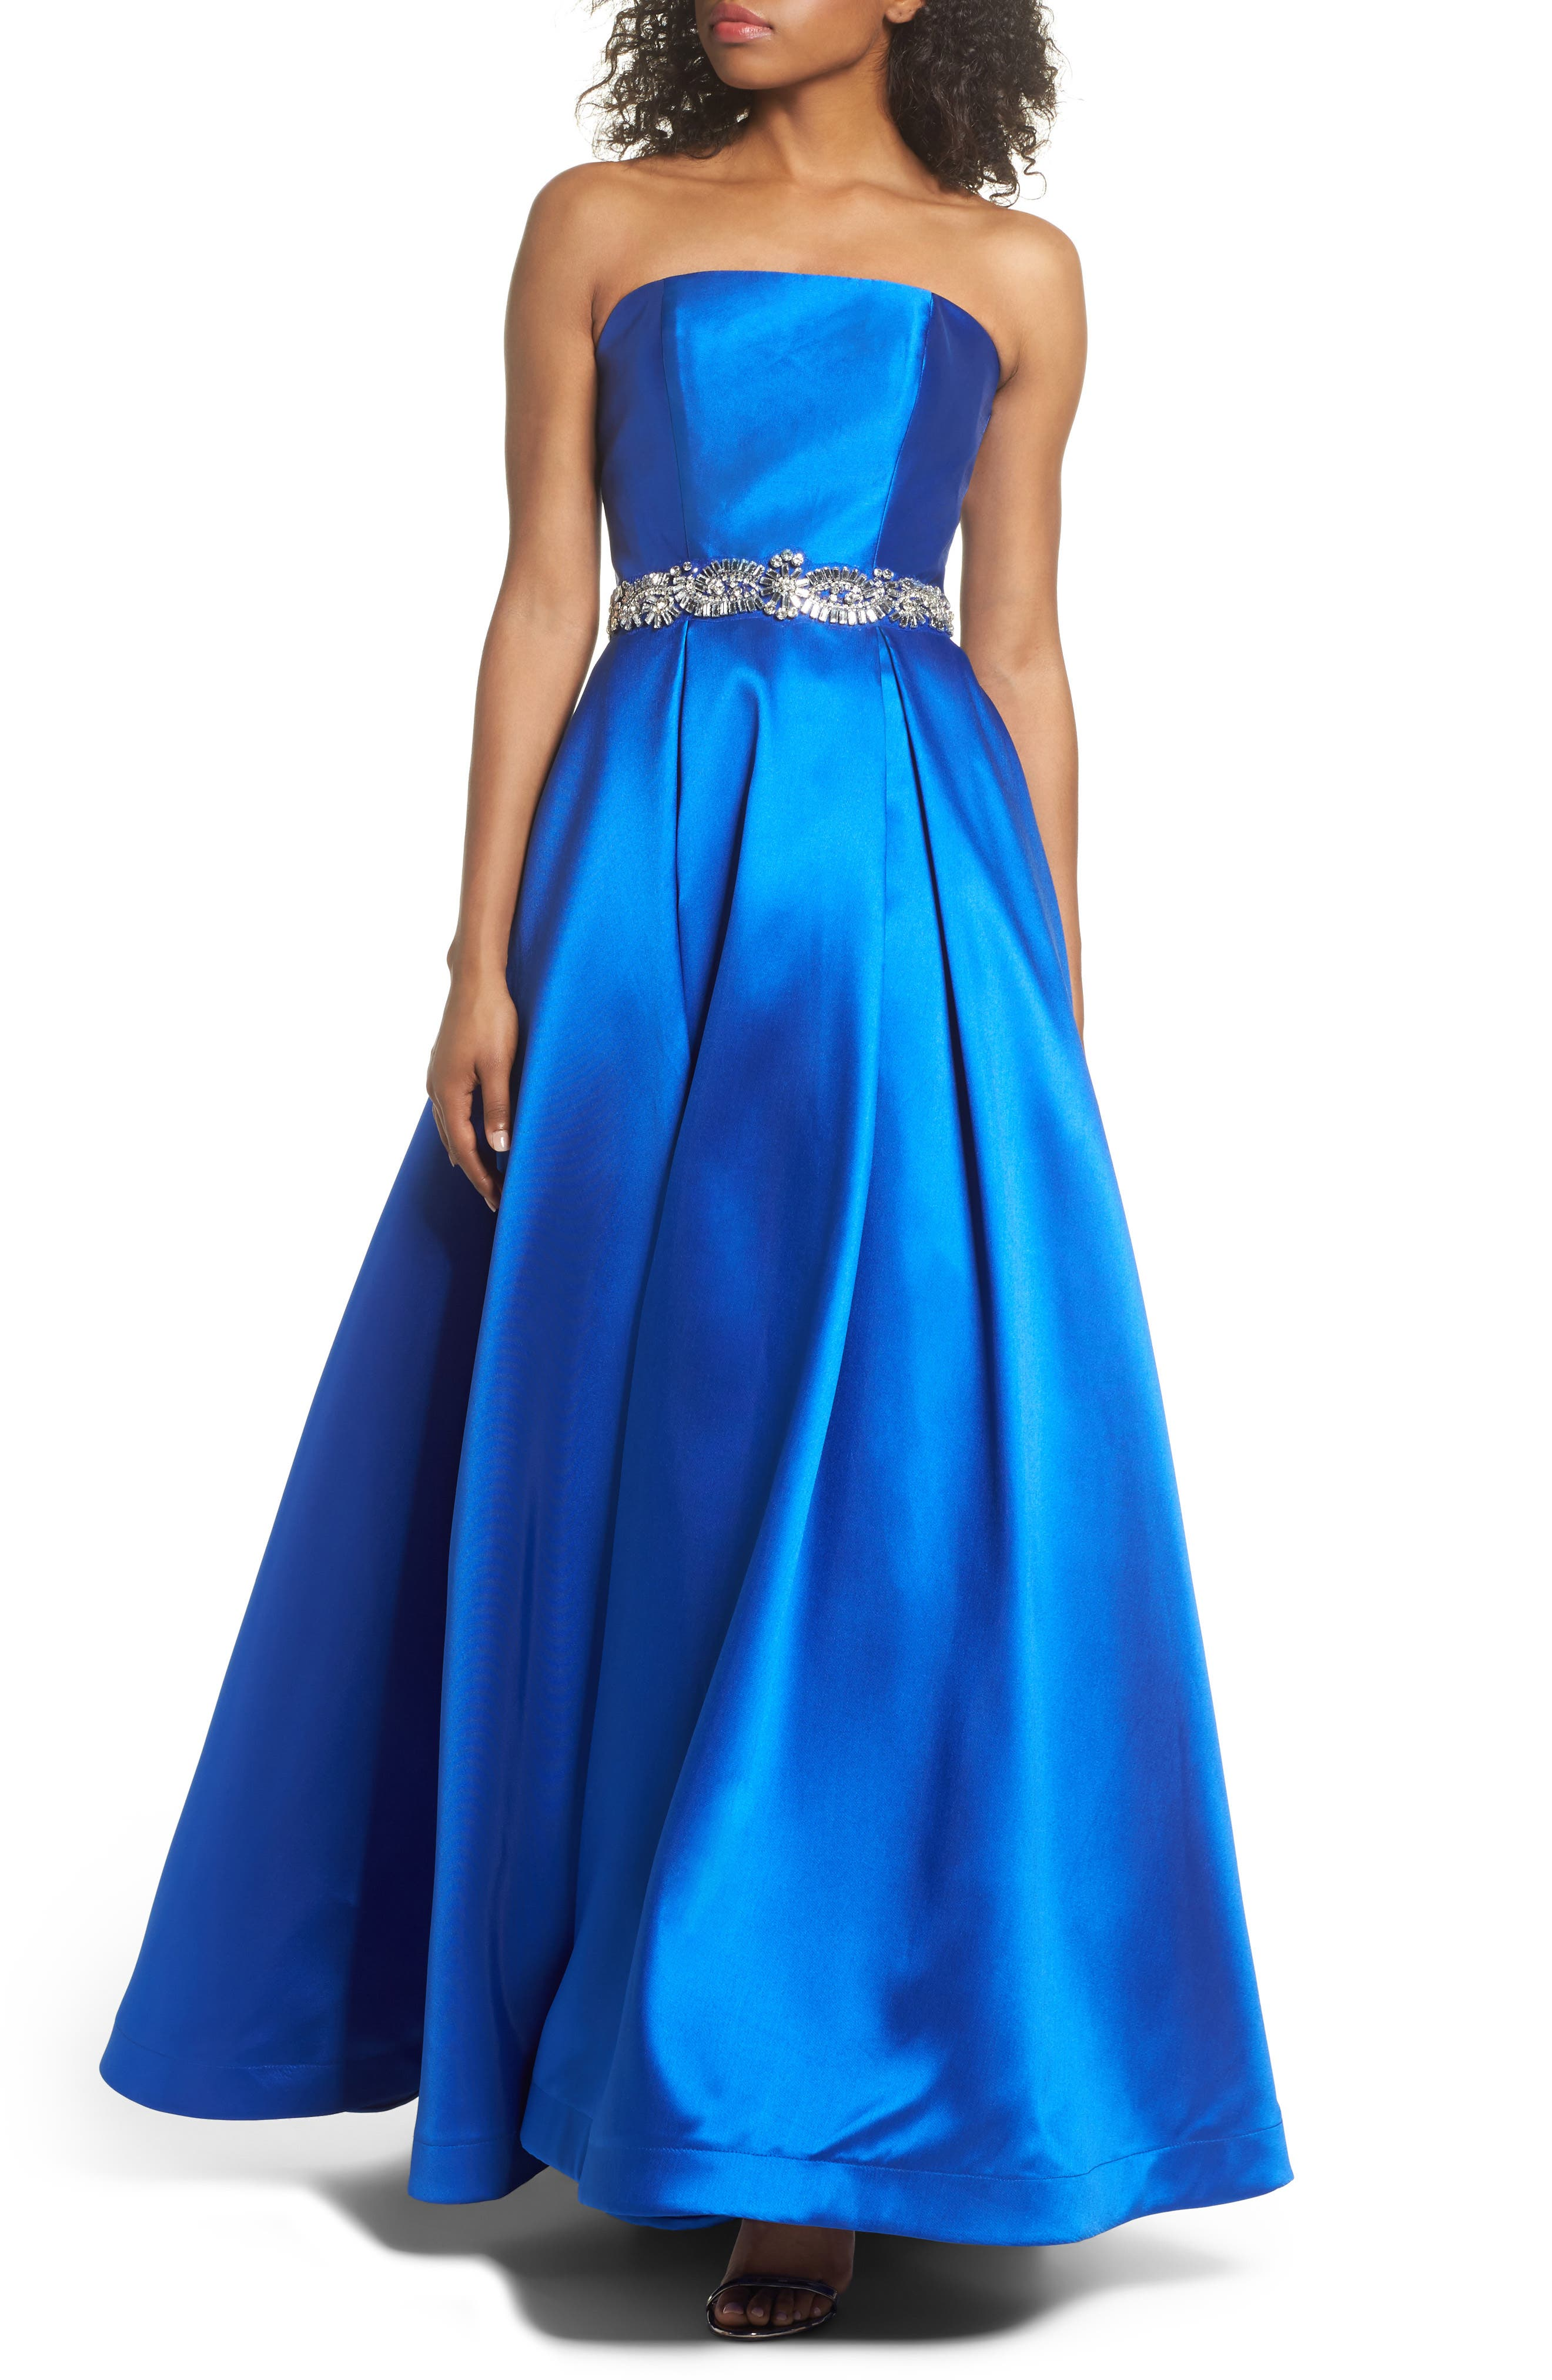 Embellished Strapless Ballgown,                             Main thumbnail 1, color,                             Blue